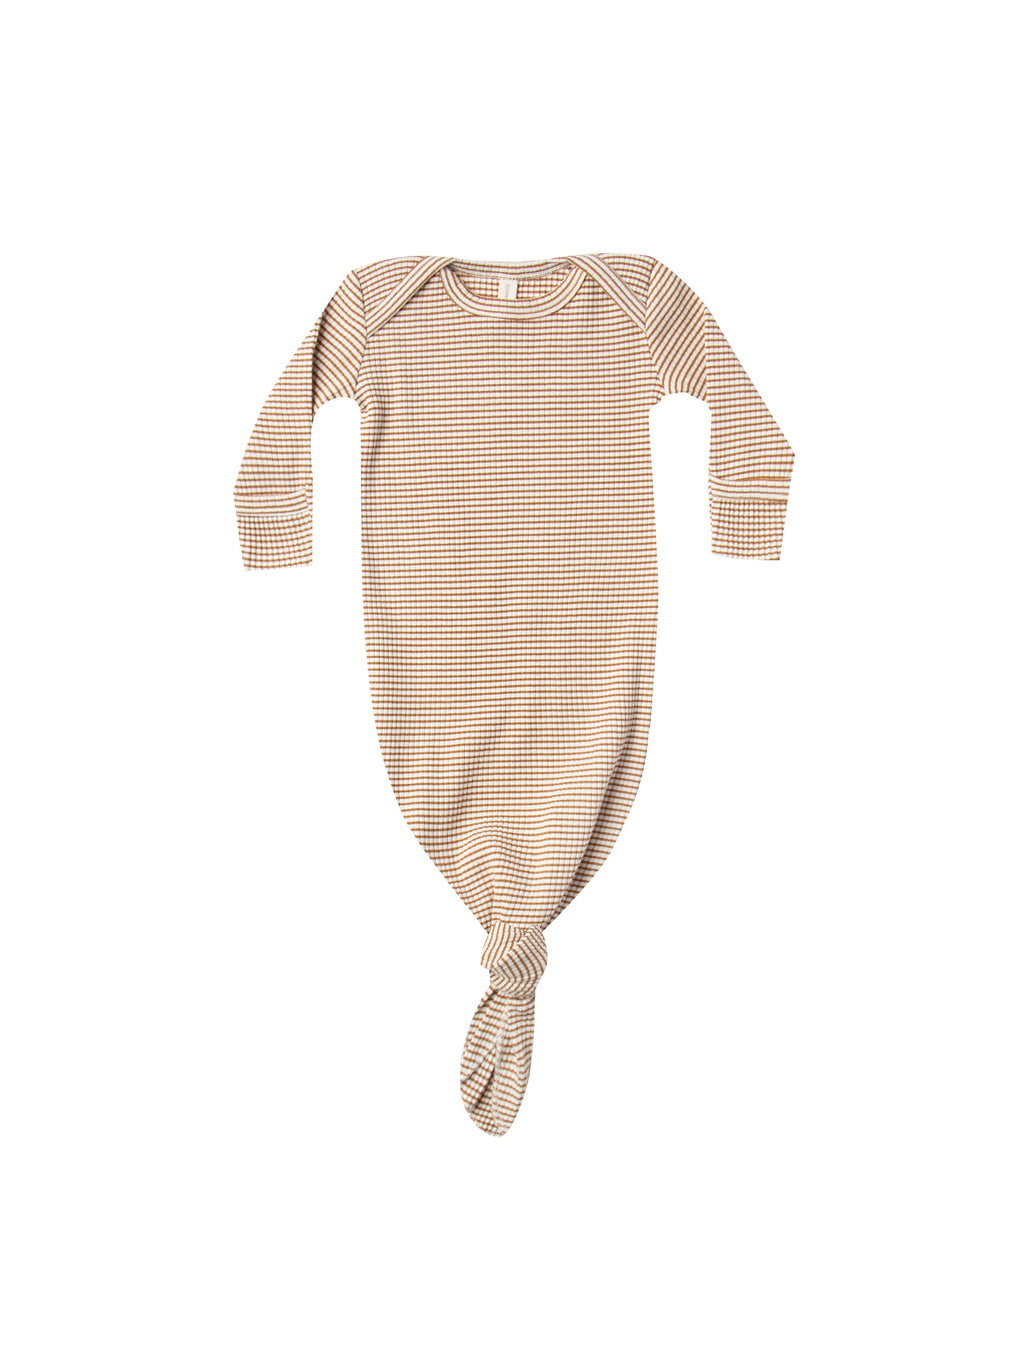 Quincy Mae Ribbed Knotted Baby Gown - Walnut Stripe